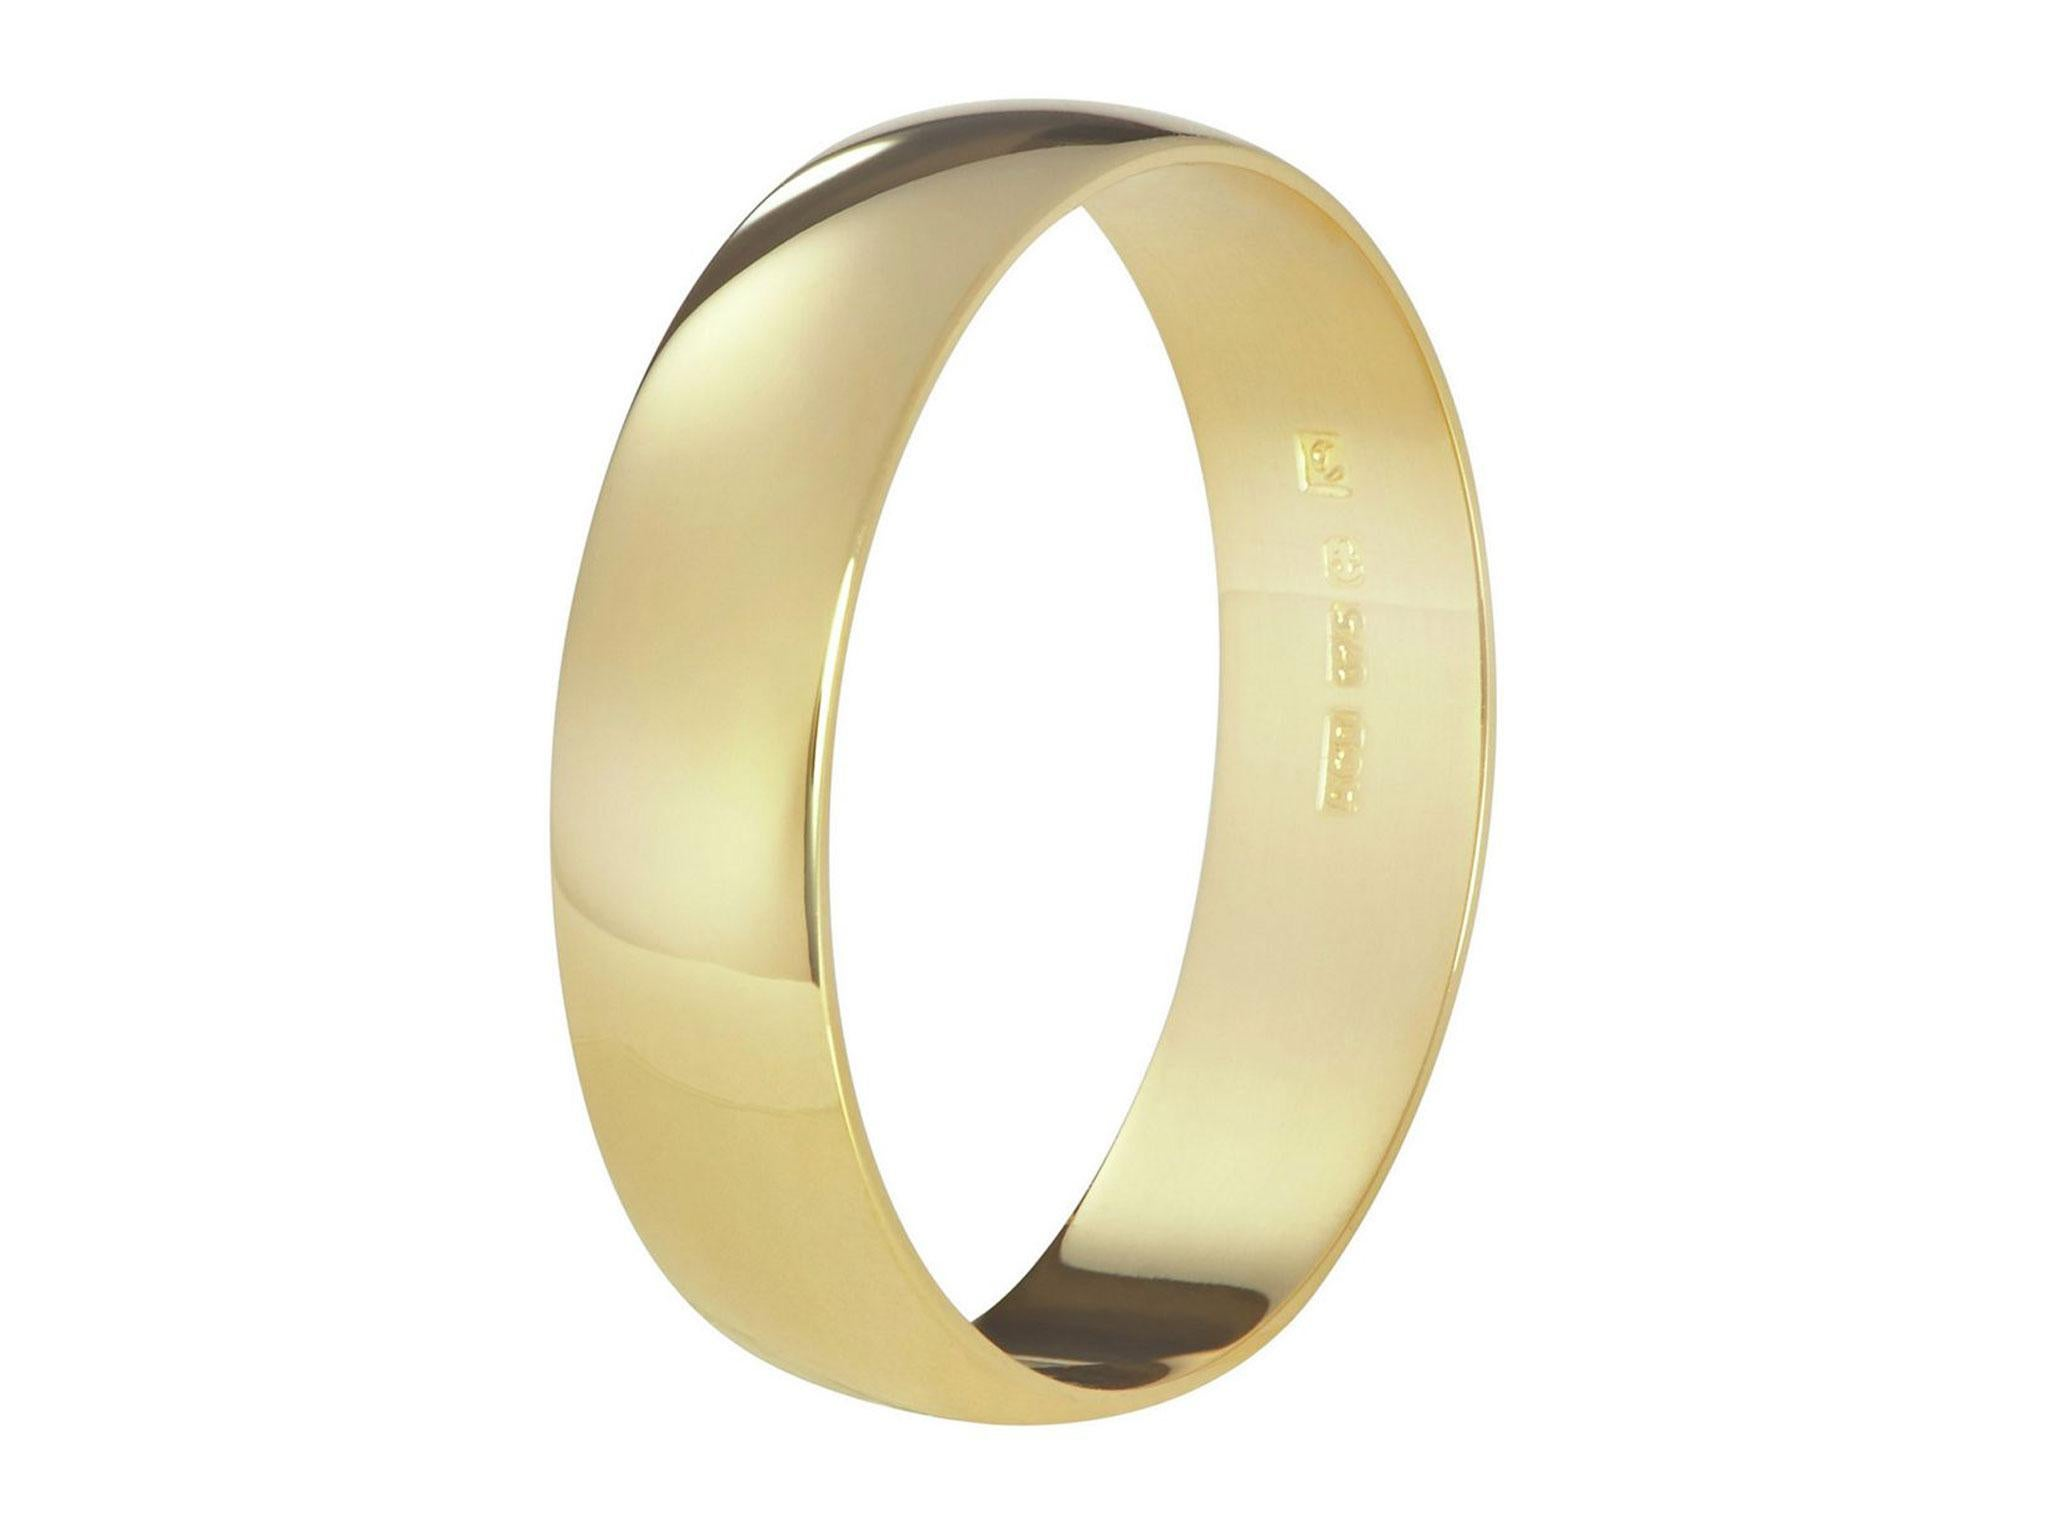 089c844f2 ... free shipping argos fairtrade 9ct gold court shape wedding ring from  129.99 argos acfe8 20173 ...